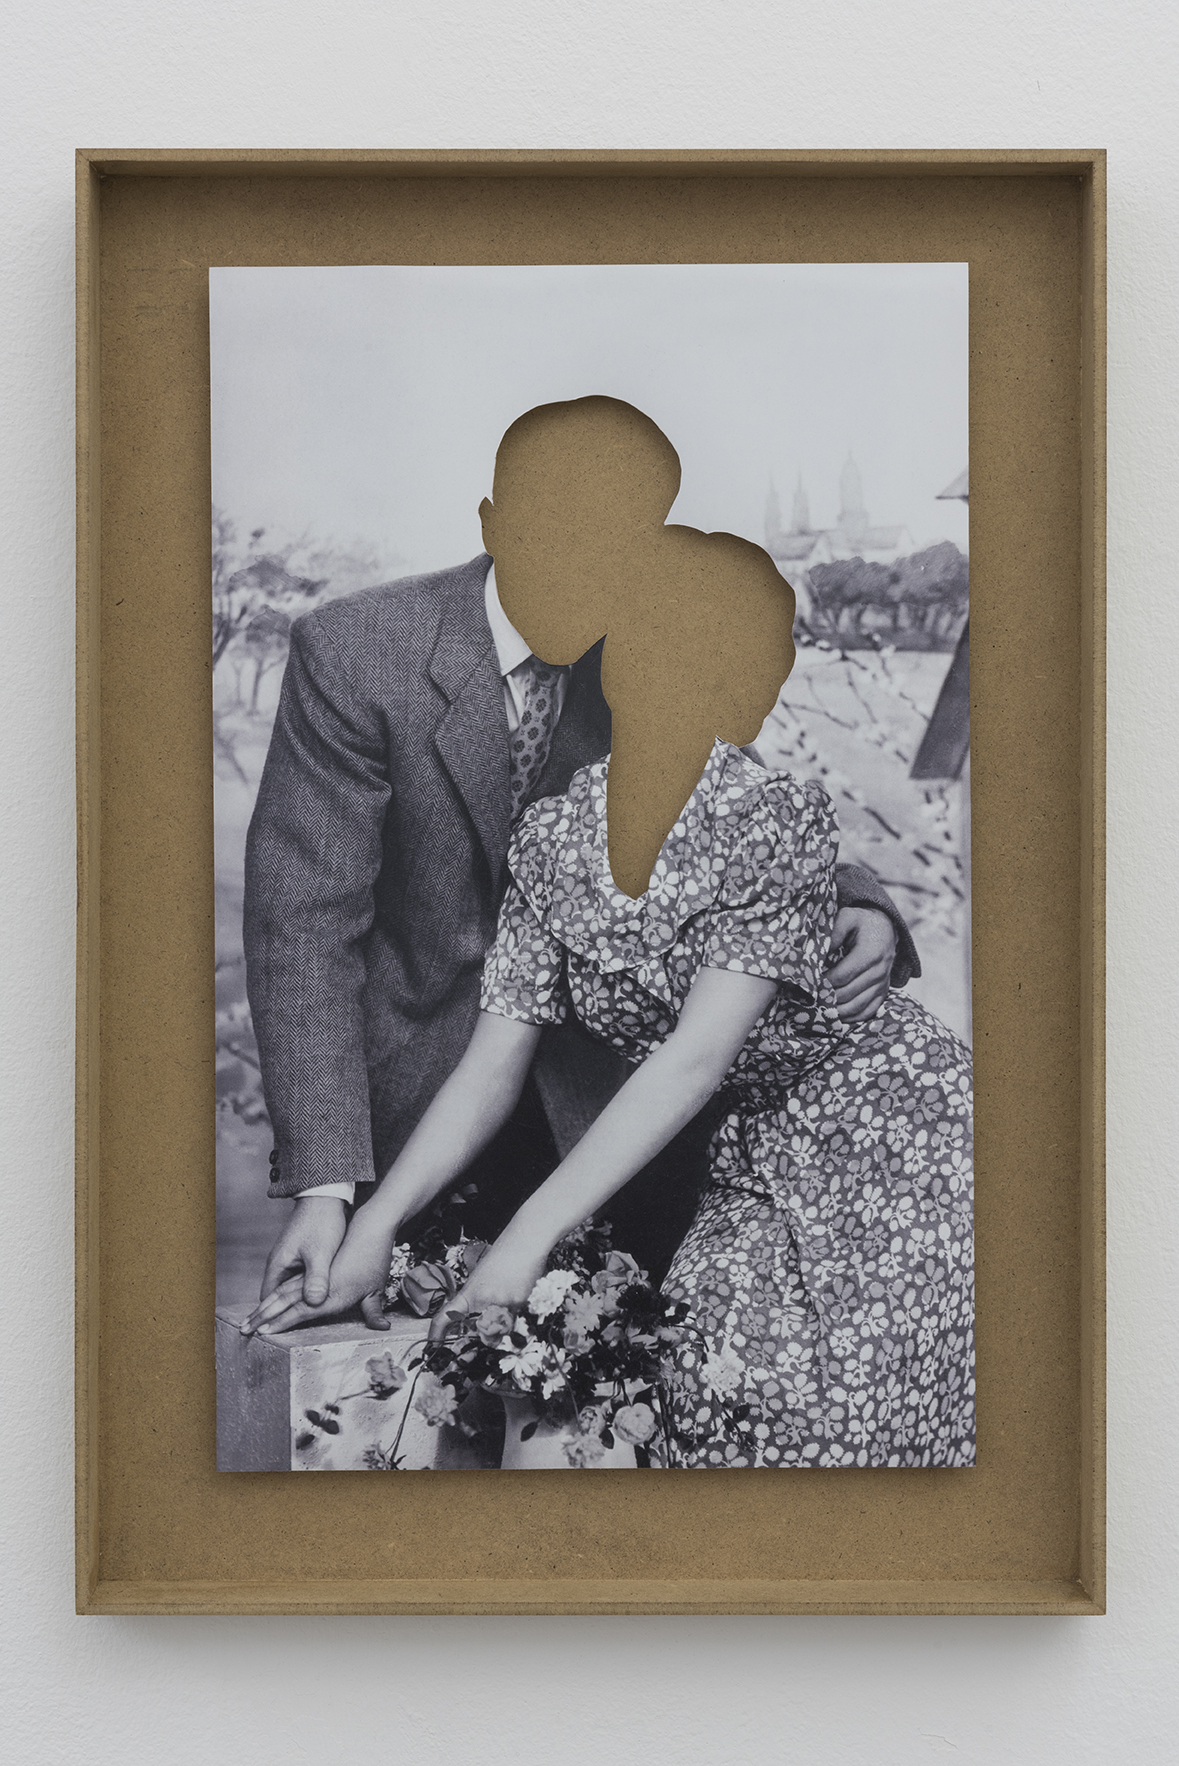 HANS-PETER FELDMANN. Love couple (2) , 2013 | ACCROCHAGE #1: Allen Ruppersberg et Al. | ProjecteSD